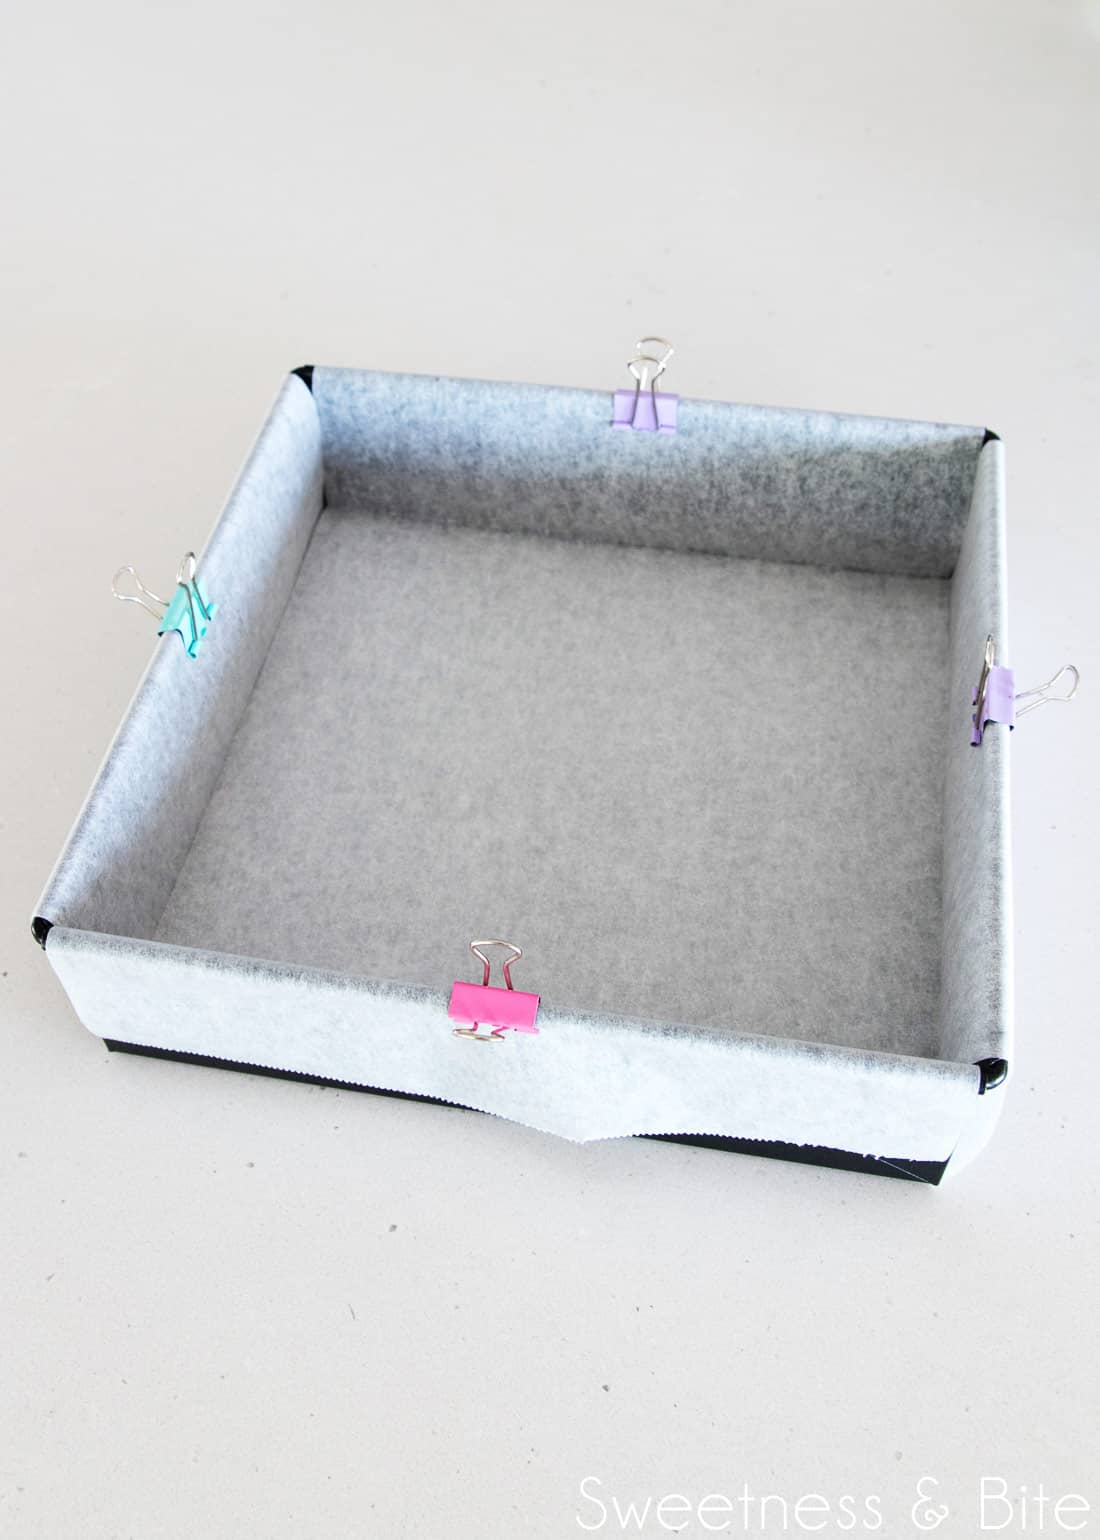 A dark metal square cake pan, with two strips of baking paper criss-crossed to line the pan, with coloured clips on each edge to hold the paper in place.